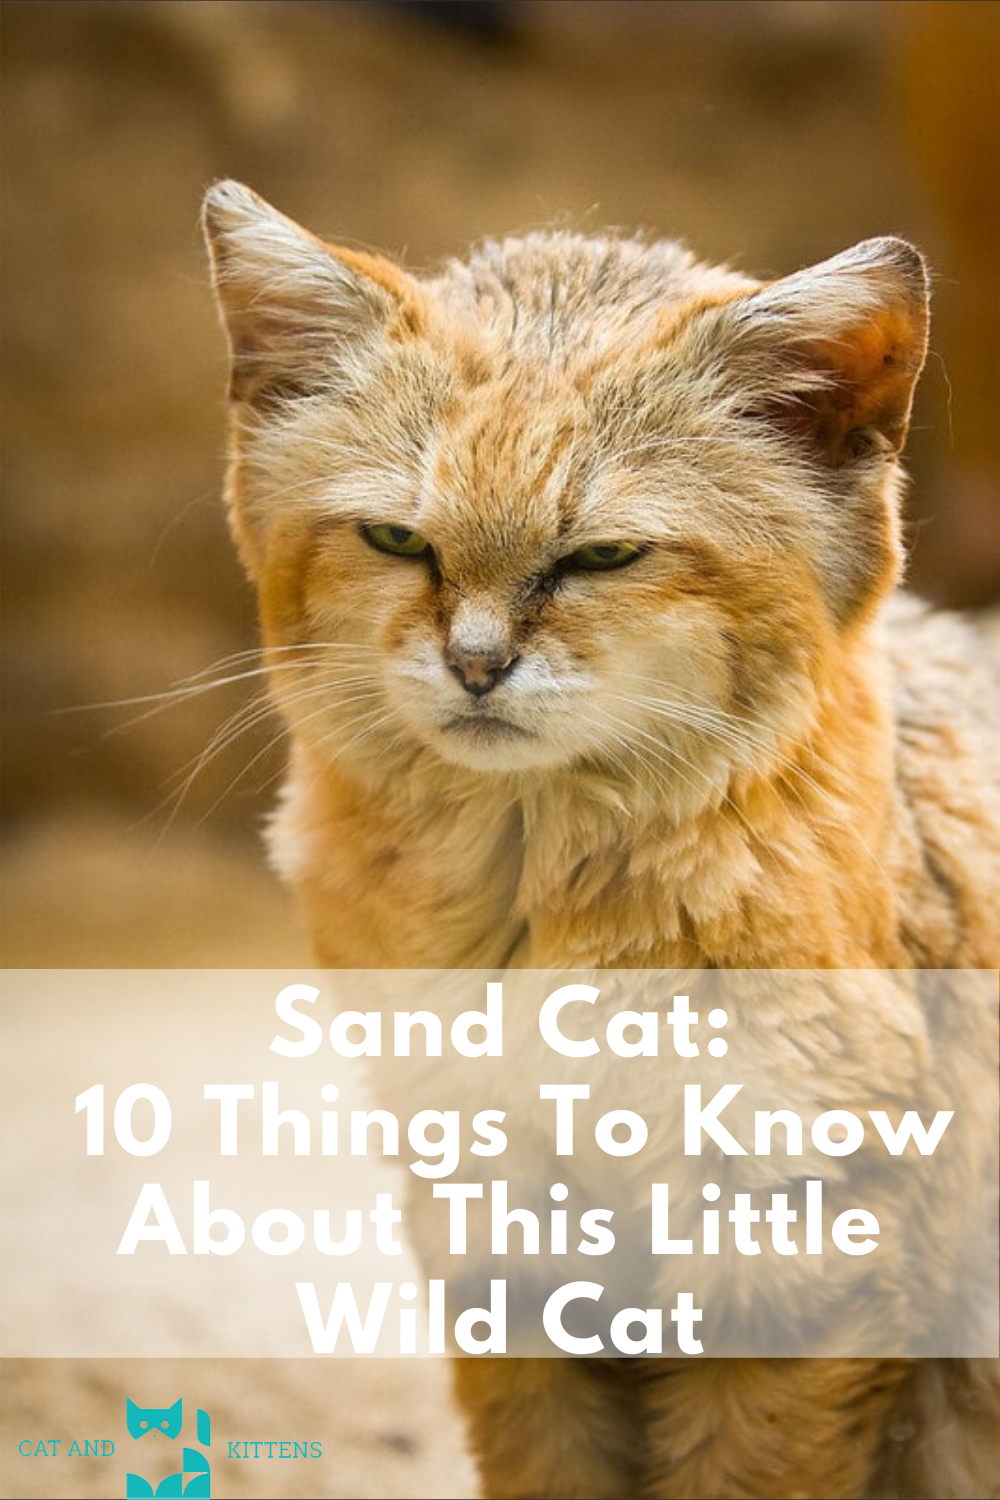 Sand Cat 10 Things To Know About This Little Wild Cat in